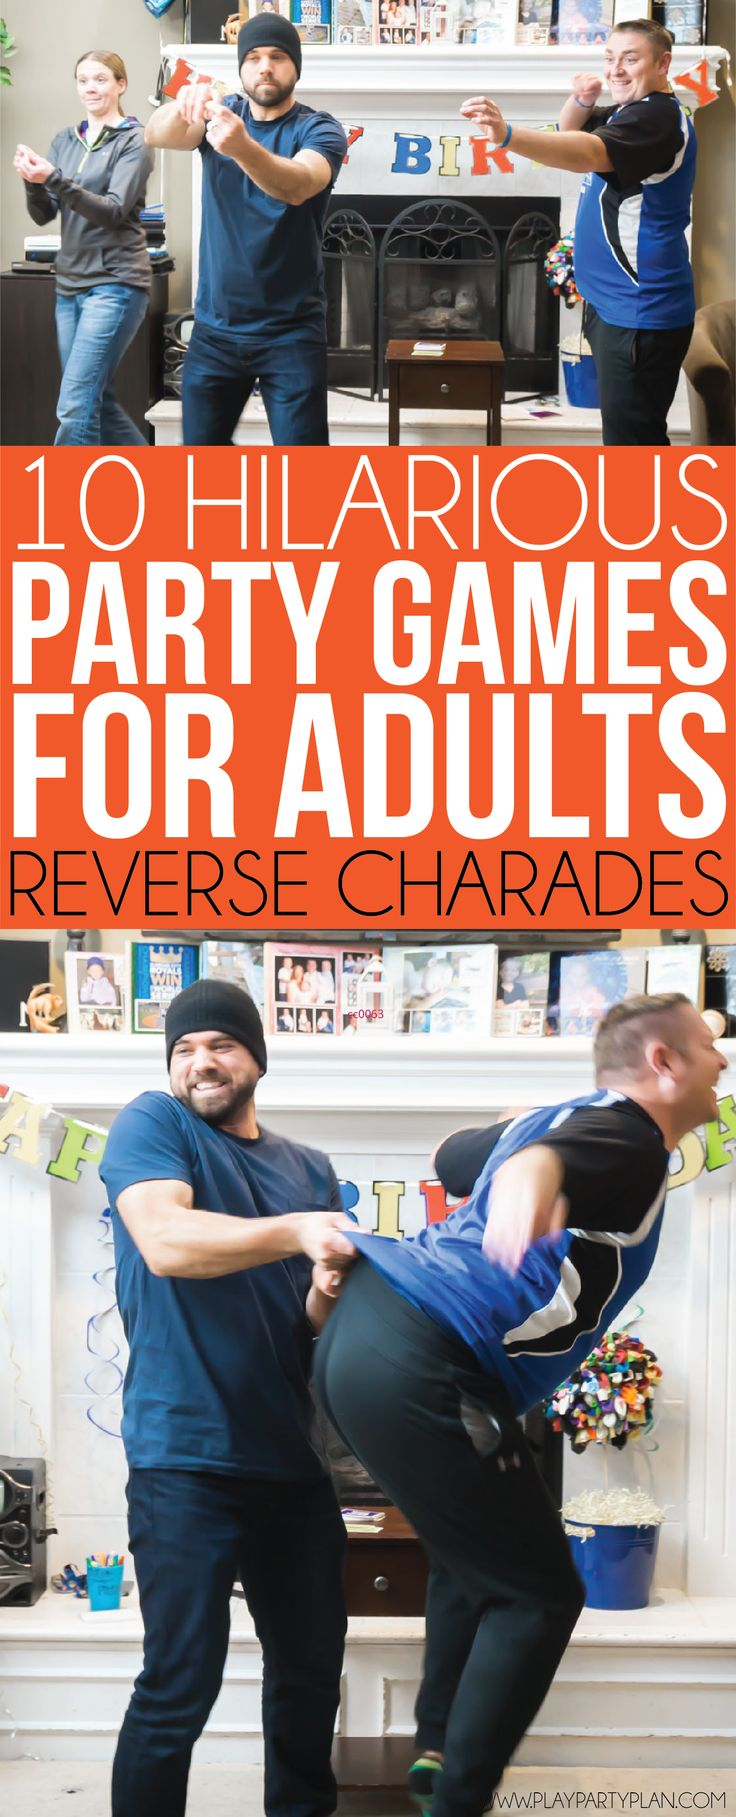 10 Hilarious Party Games For Adults That Would Work Great -7092